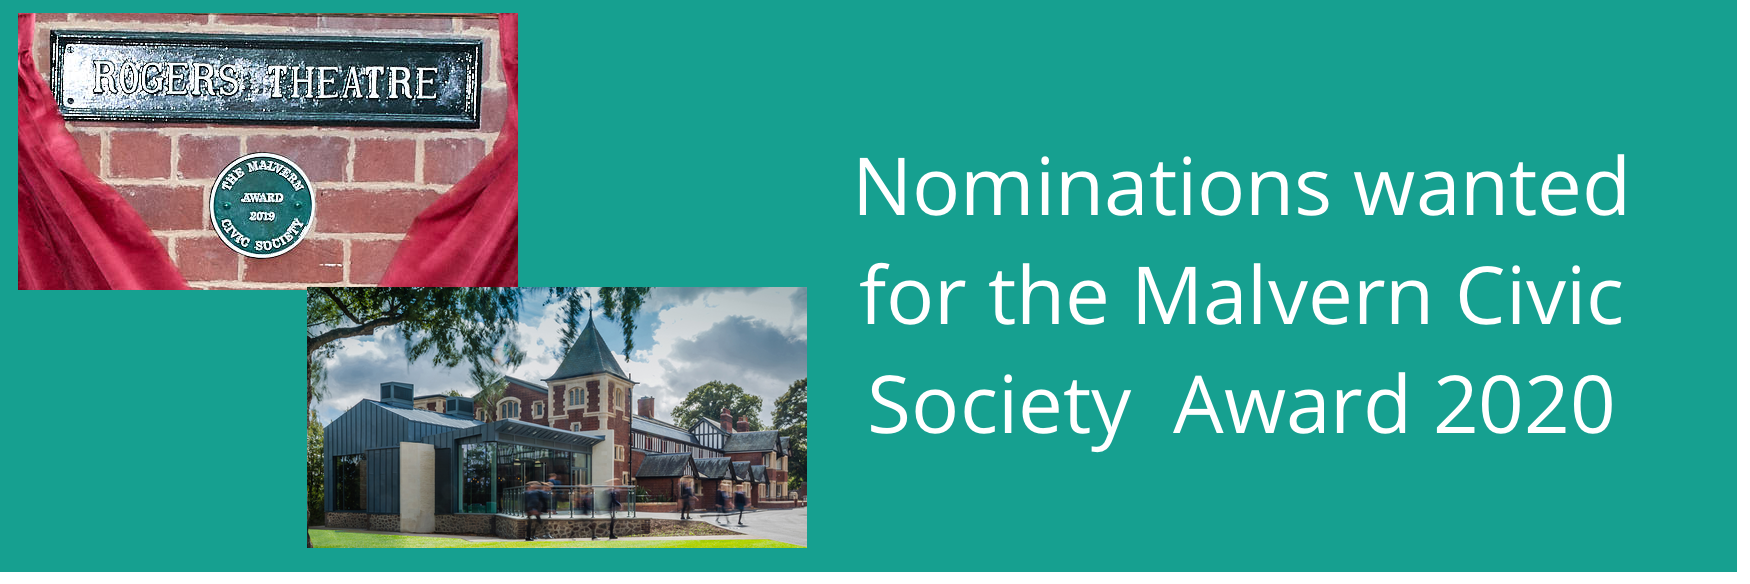 Nominations wanted for Malvern Civic Society Award 2020